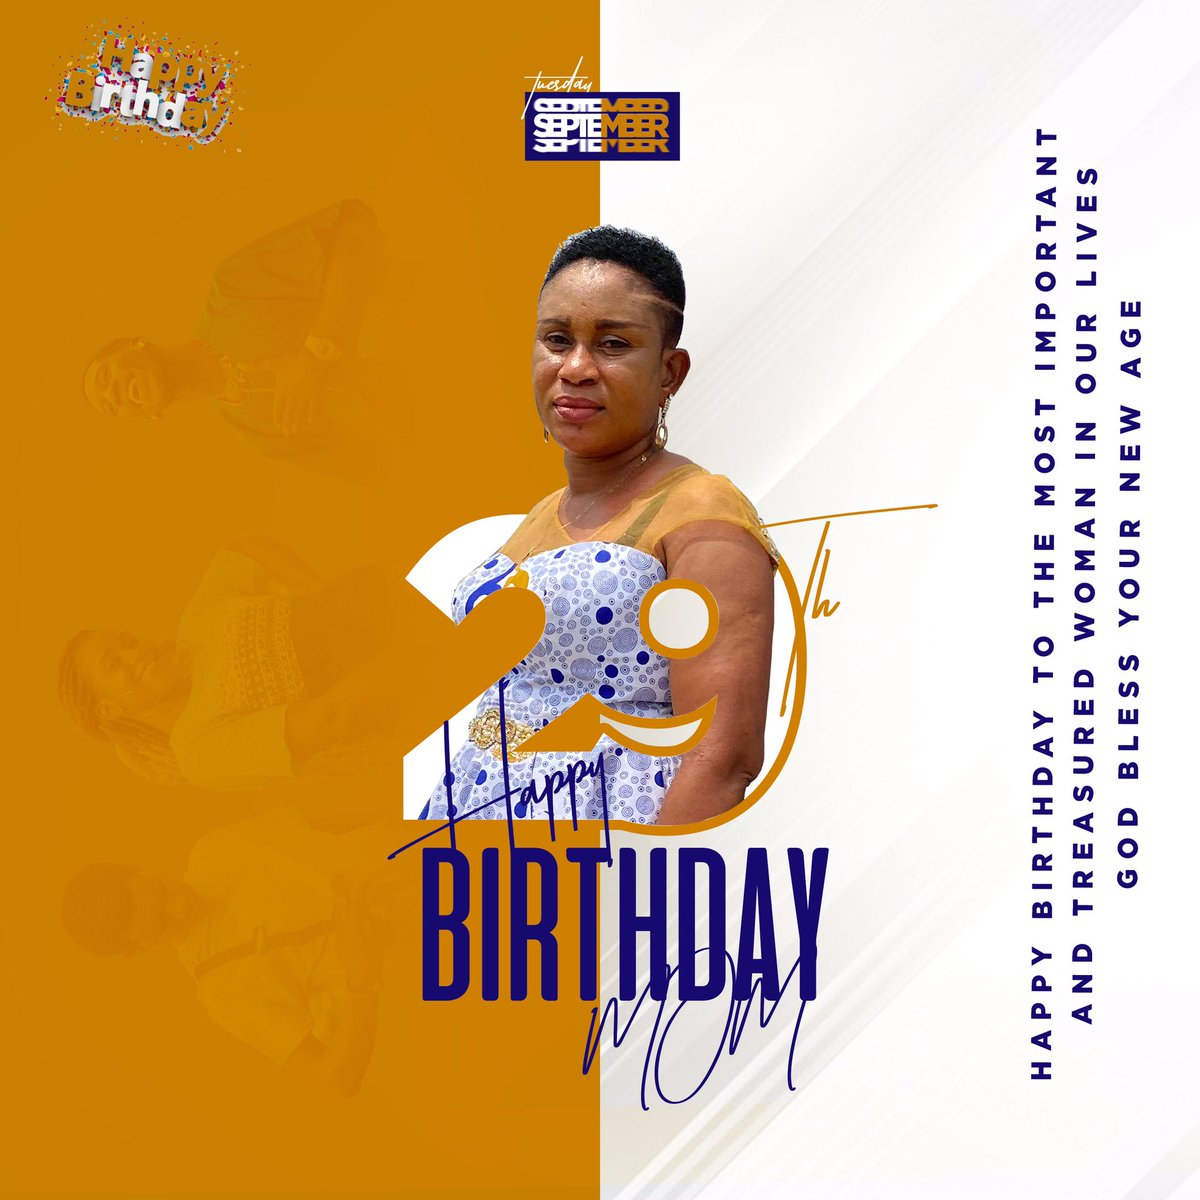 Hi guys please RT this birthday art I might have a customer in your timeline who needs a design like this ... #birthdays #birthday #29thseptember #customers #designs #graphicdesign #graphicdesigner #design2020 https://t.co/Jj6MVhiRWr